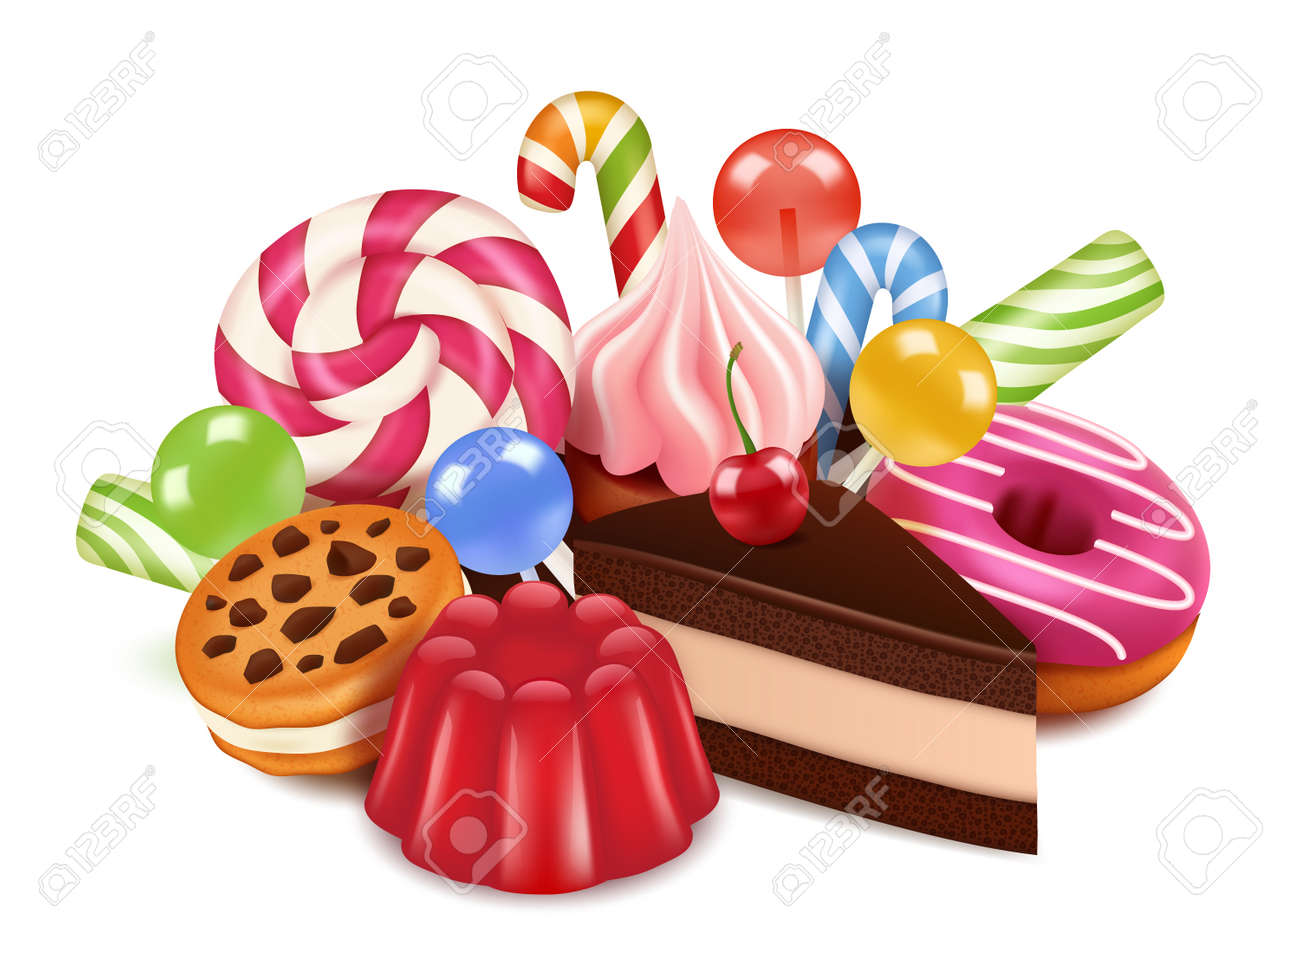 Dessert illustrations. Background with homemade cakes, chocolate candy lollipop and sweets. Vector high res pictures of tasty desserts - 167541038